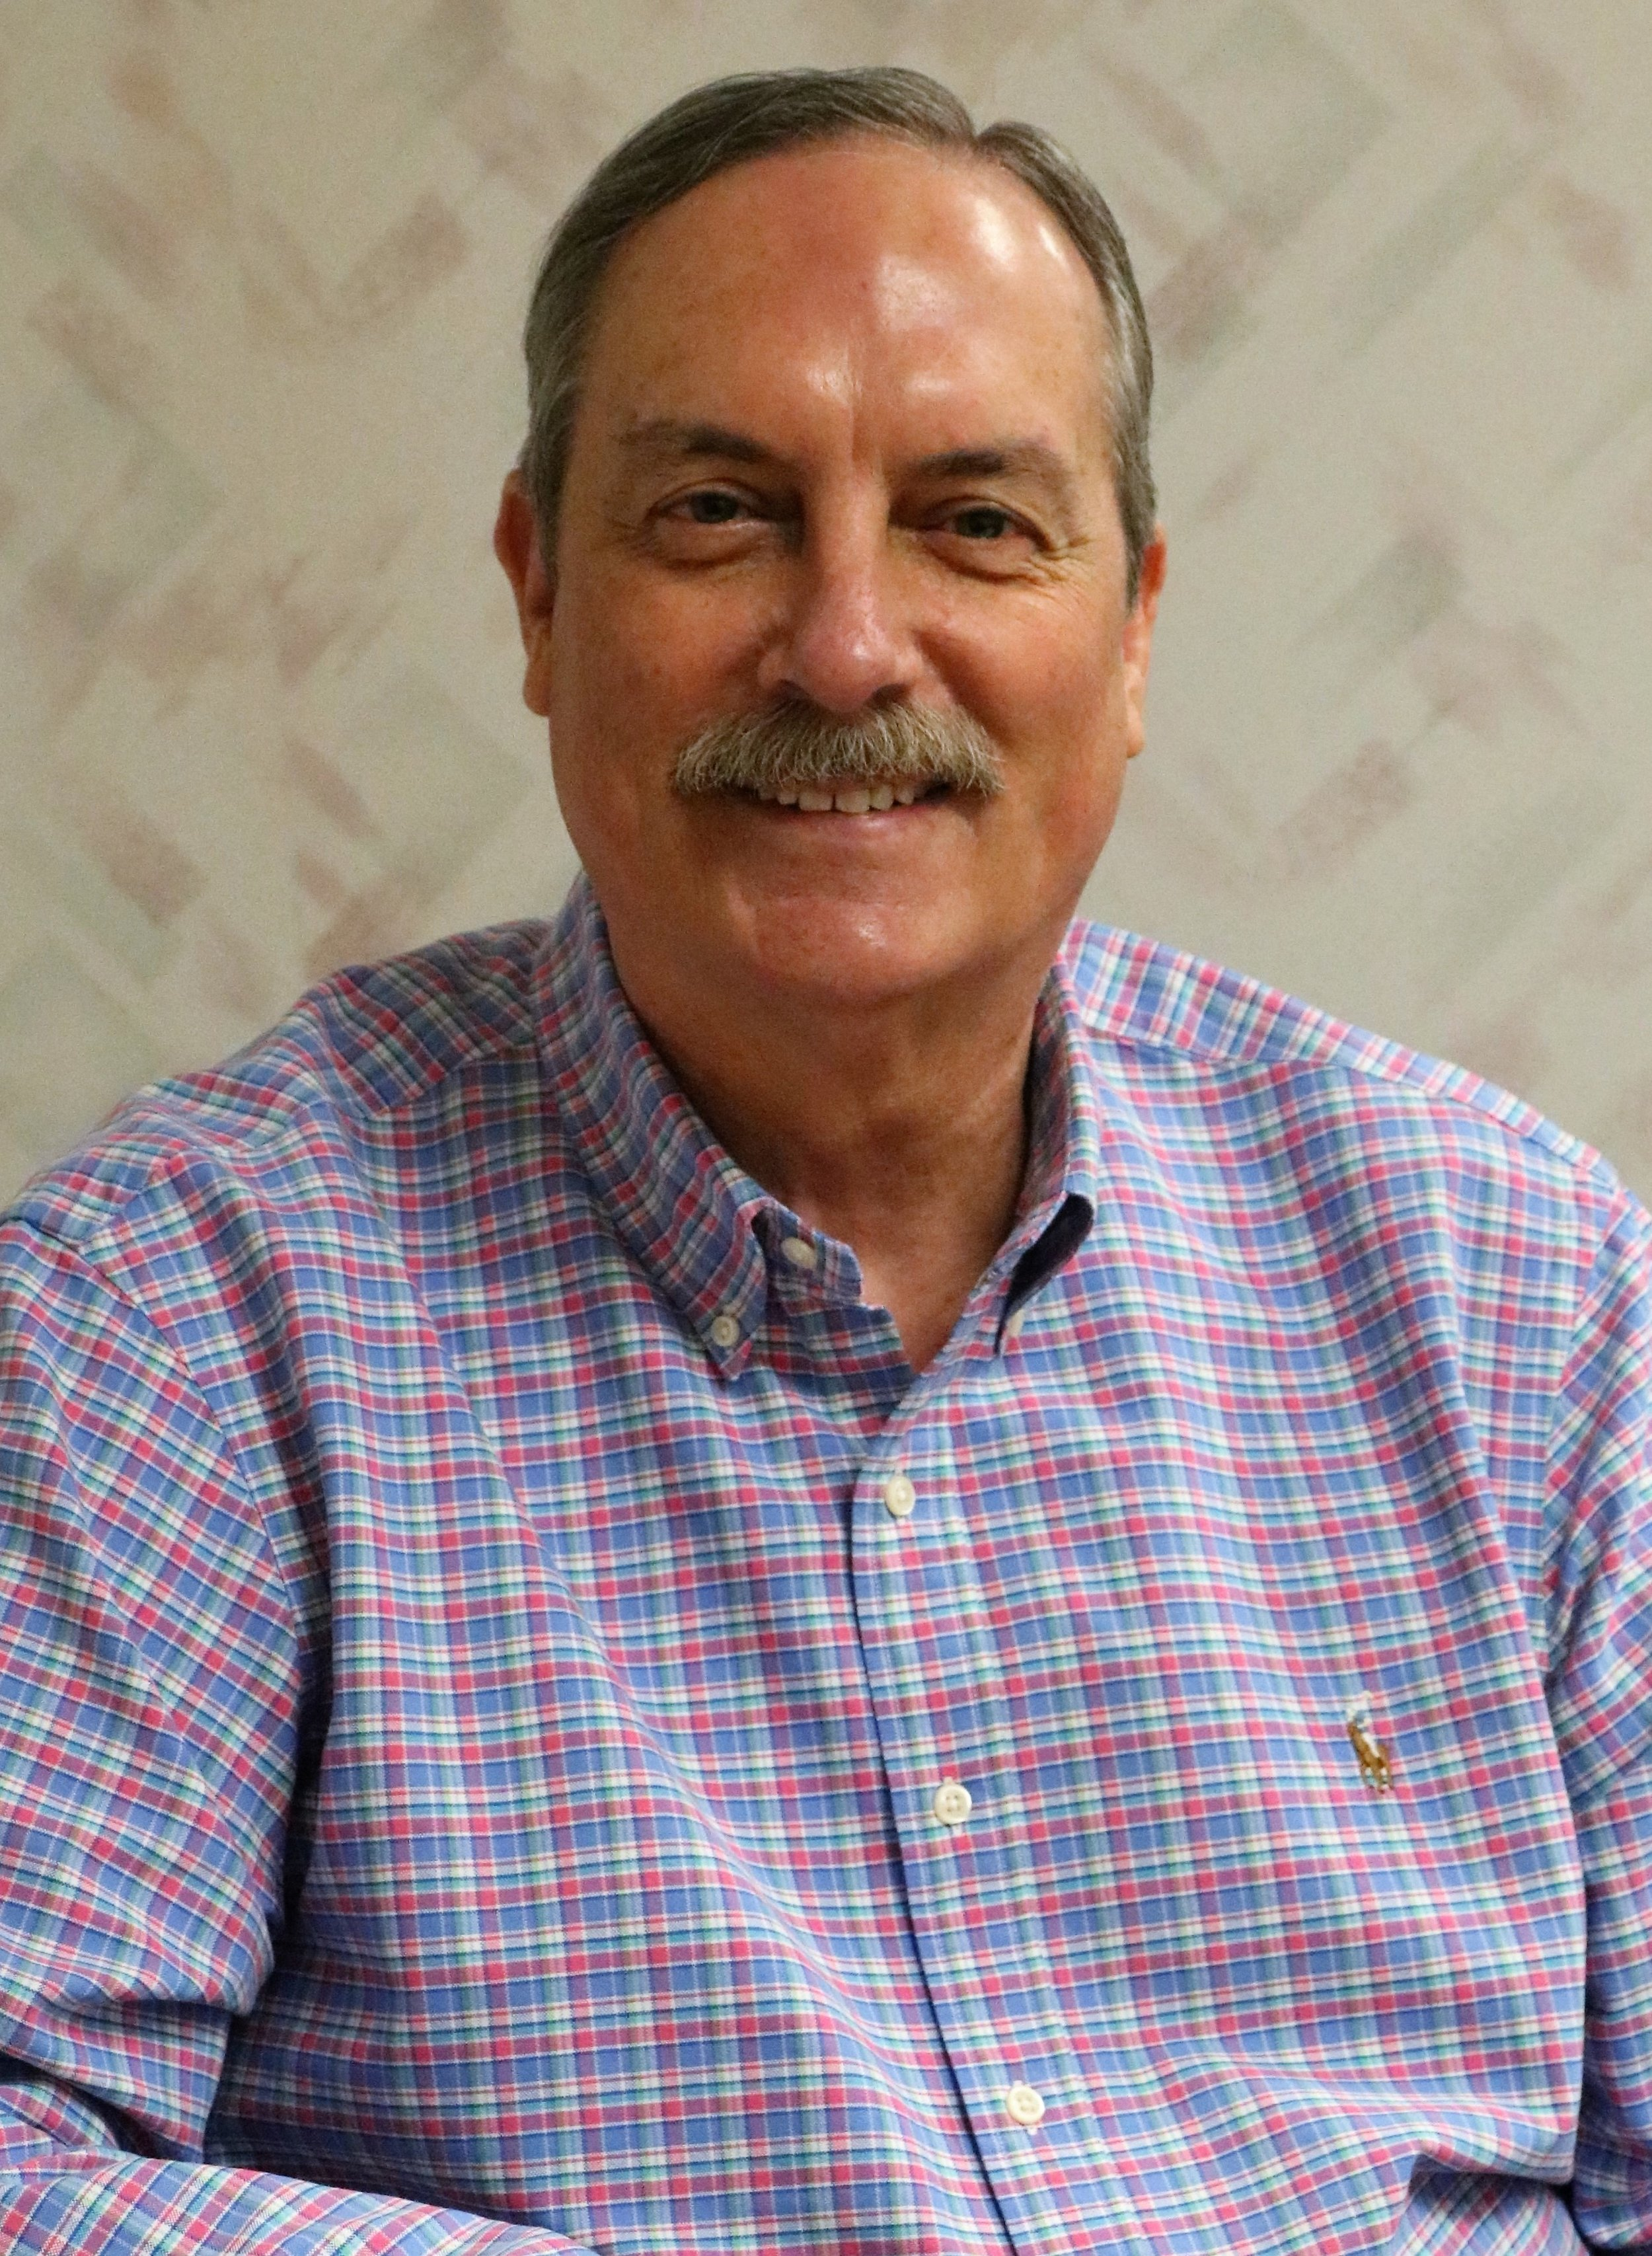 MayorKen Tedford - CCH Inc MemberOwner / Tedford Tire & Auto Service